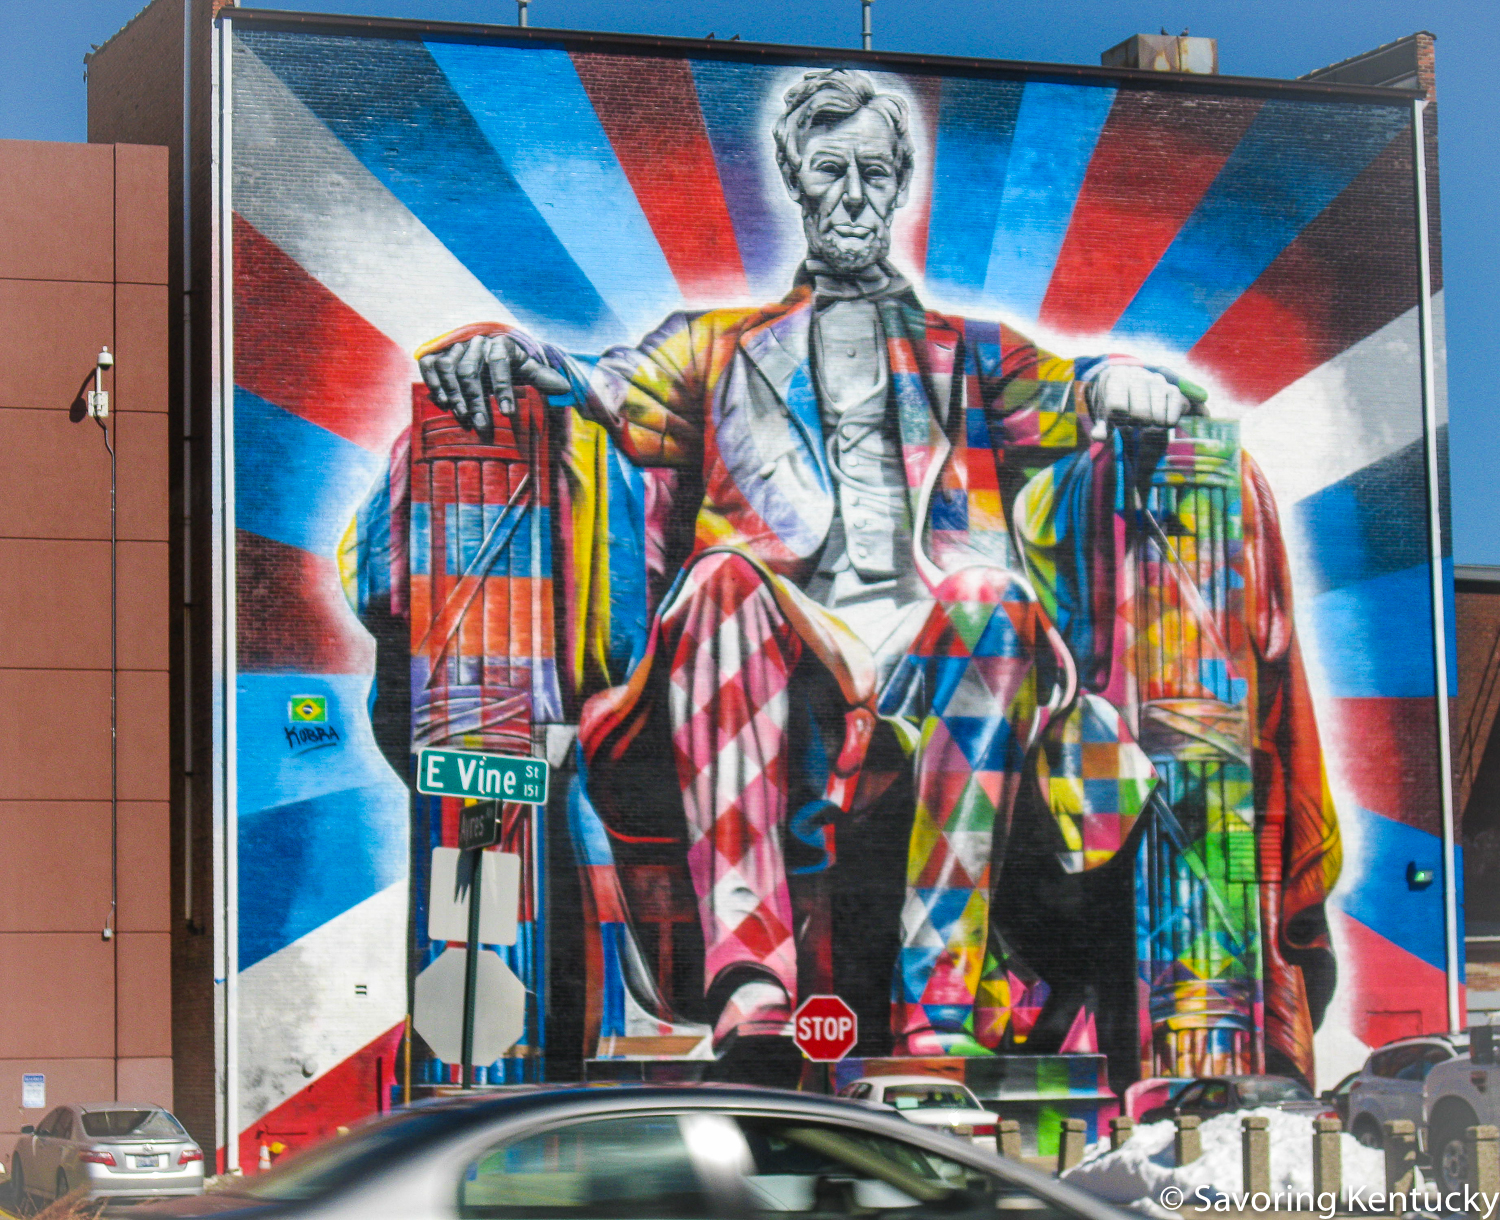 Abe sits in the thick of things, right where he liked to be, on Vine Street in Lexington, in this spectacular  Eduardo Kobra  mural.